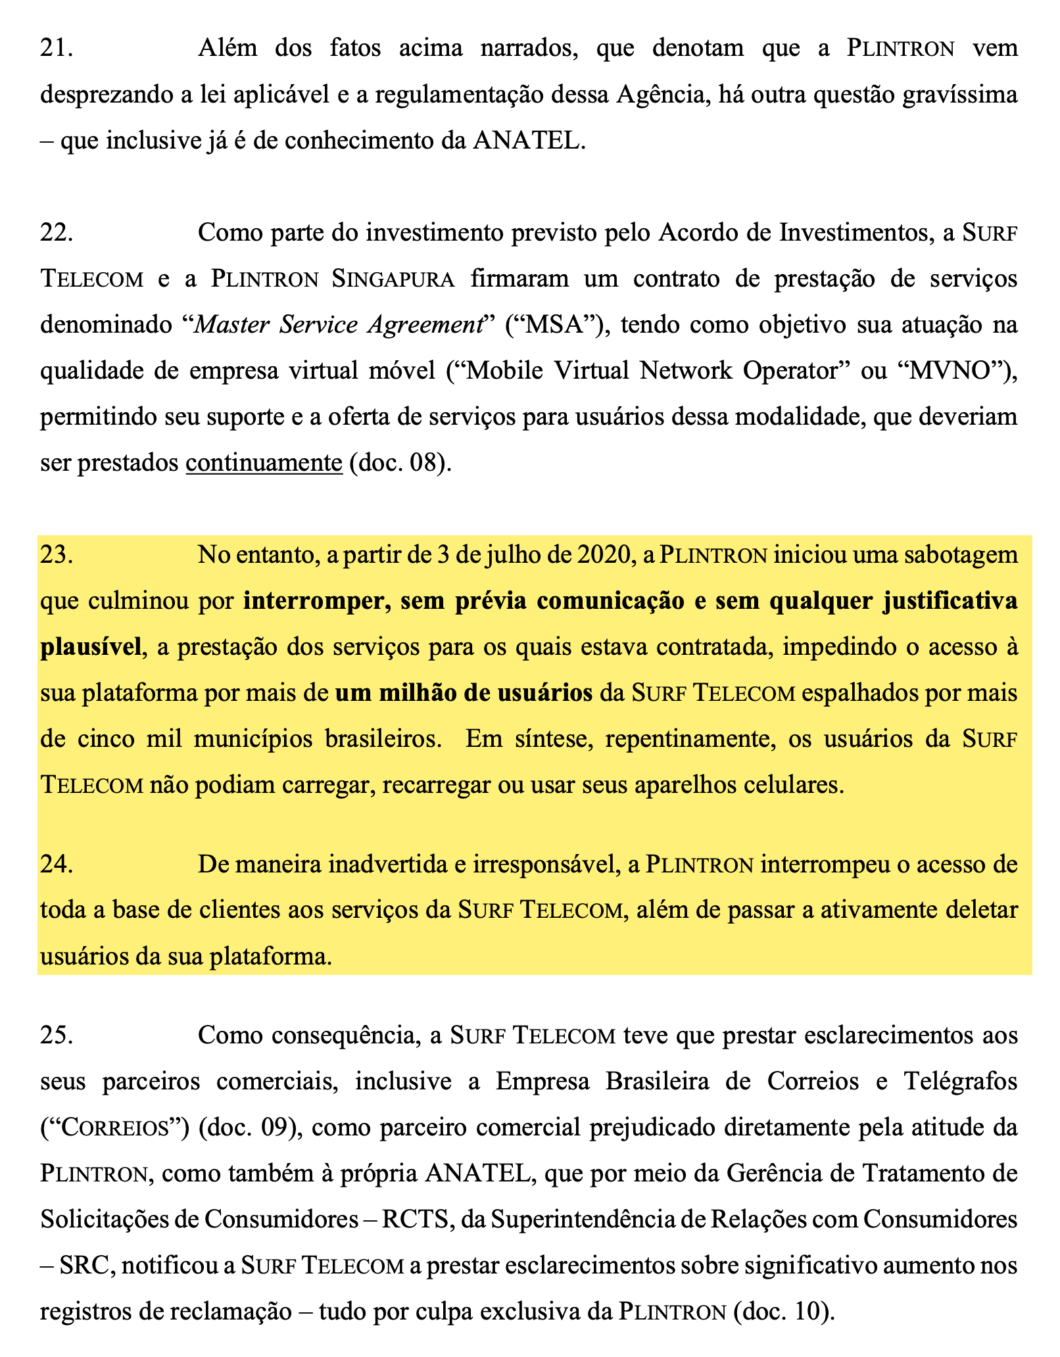 Excerpt from Surf's request for injunction against Plintron